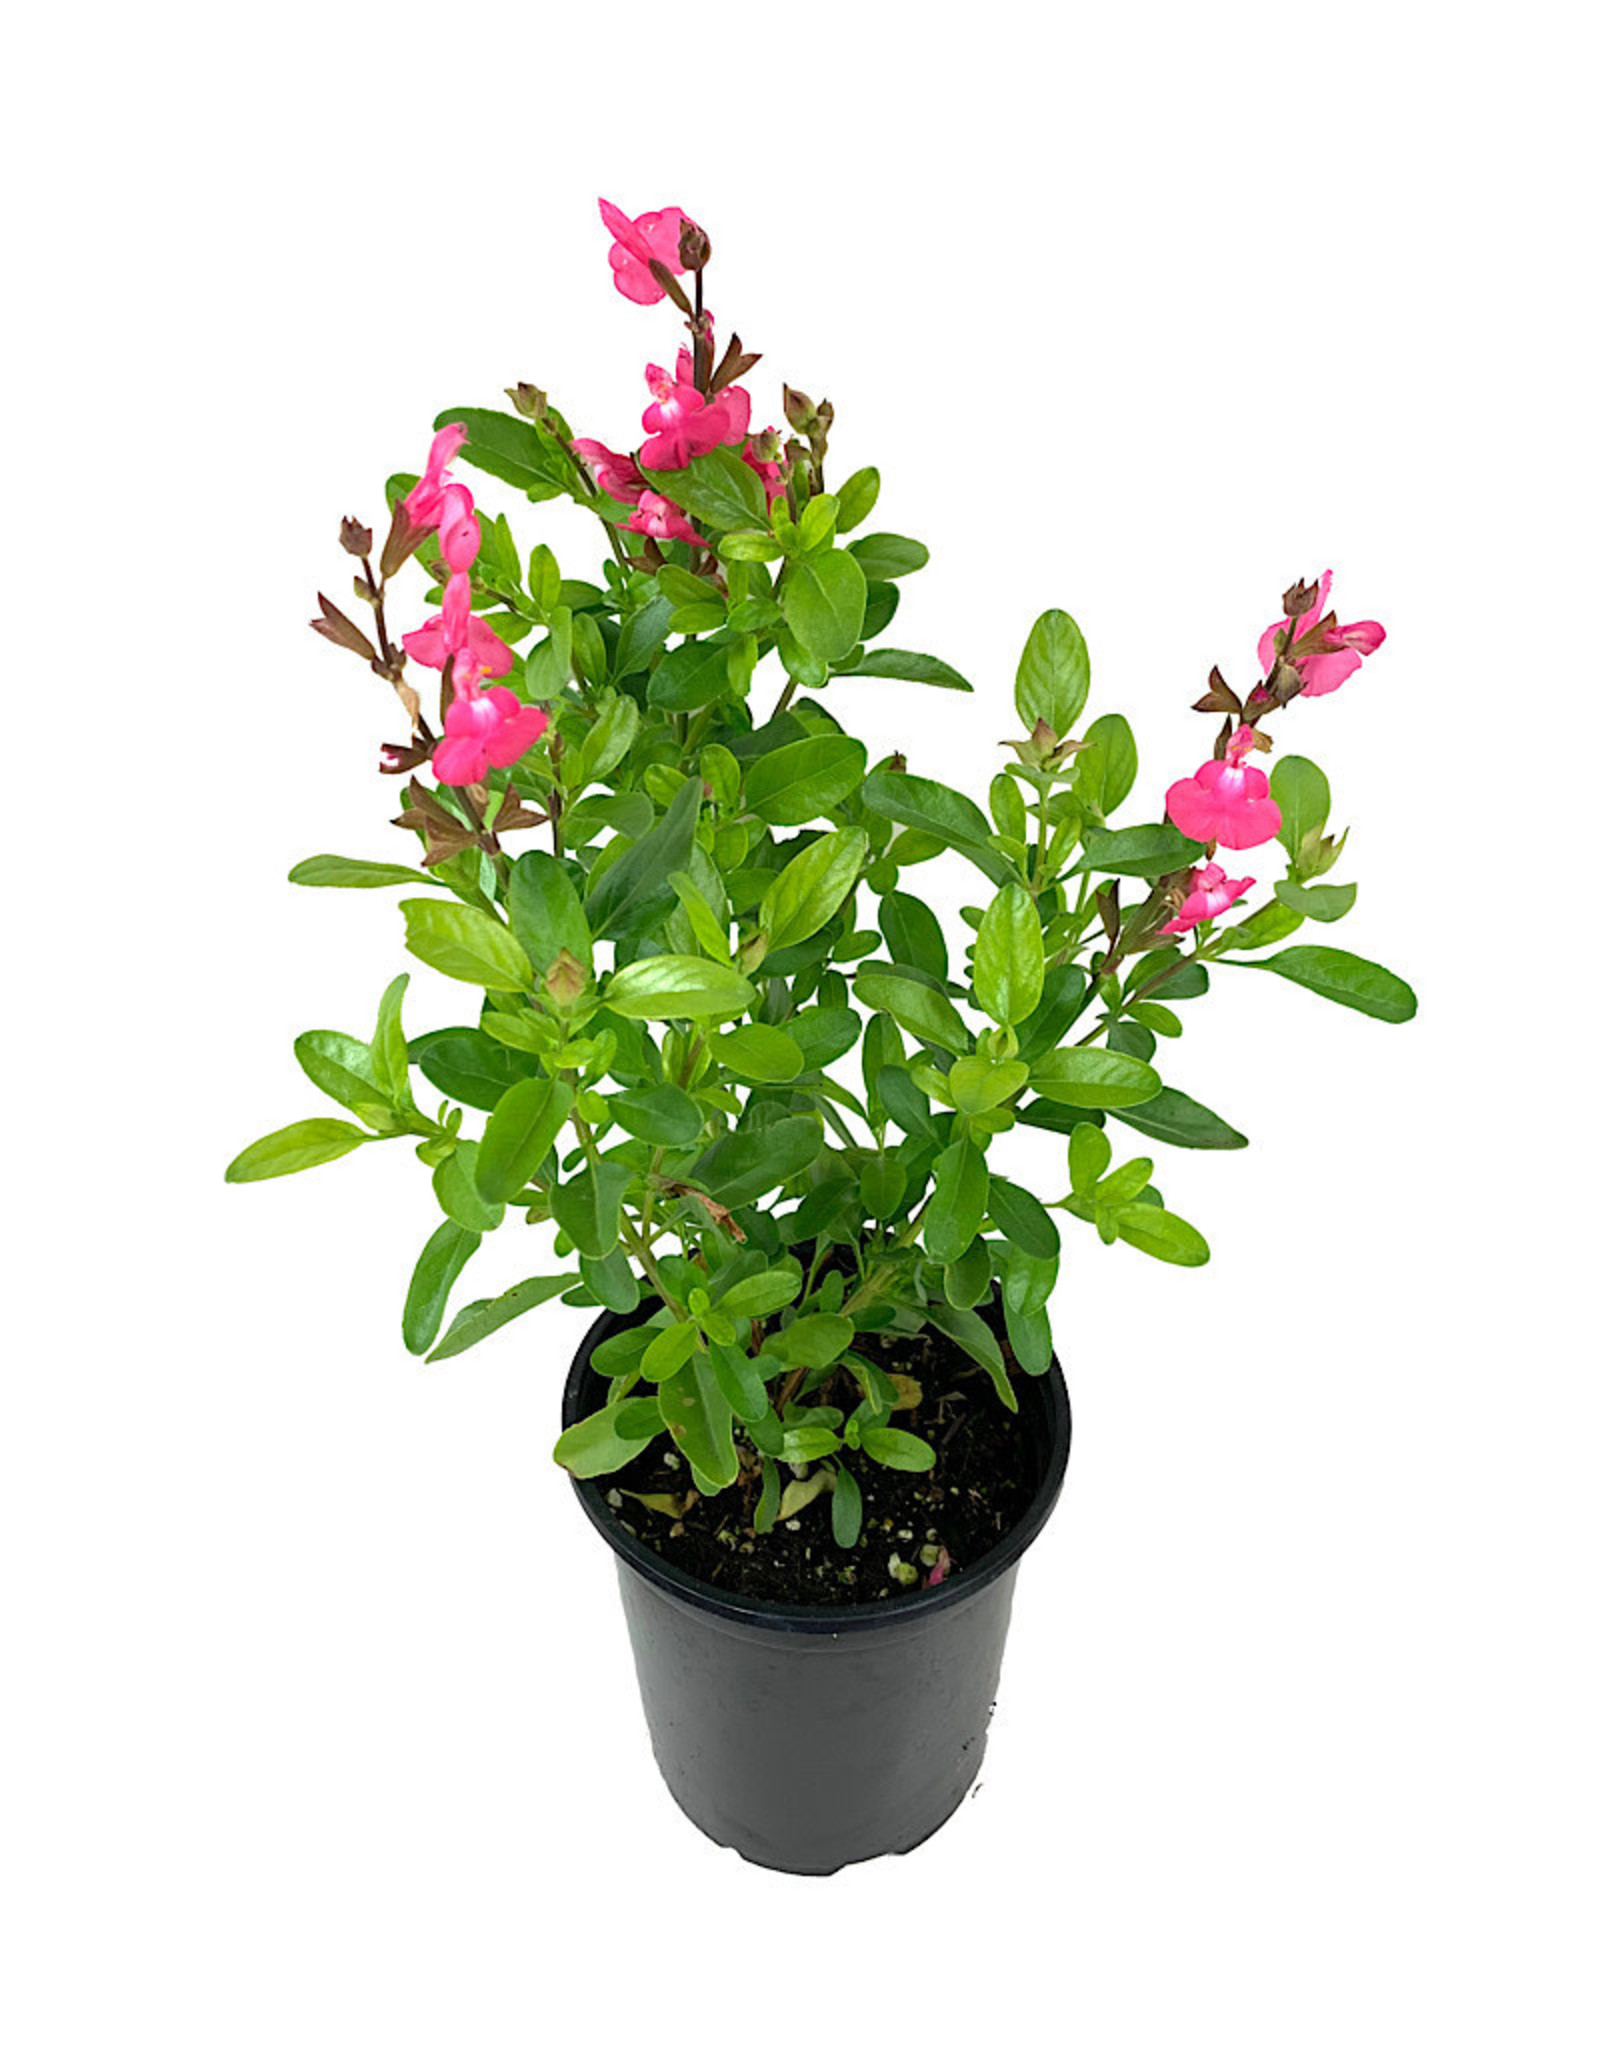 Salvia greggi 'Mirage Pink' Quart